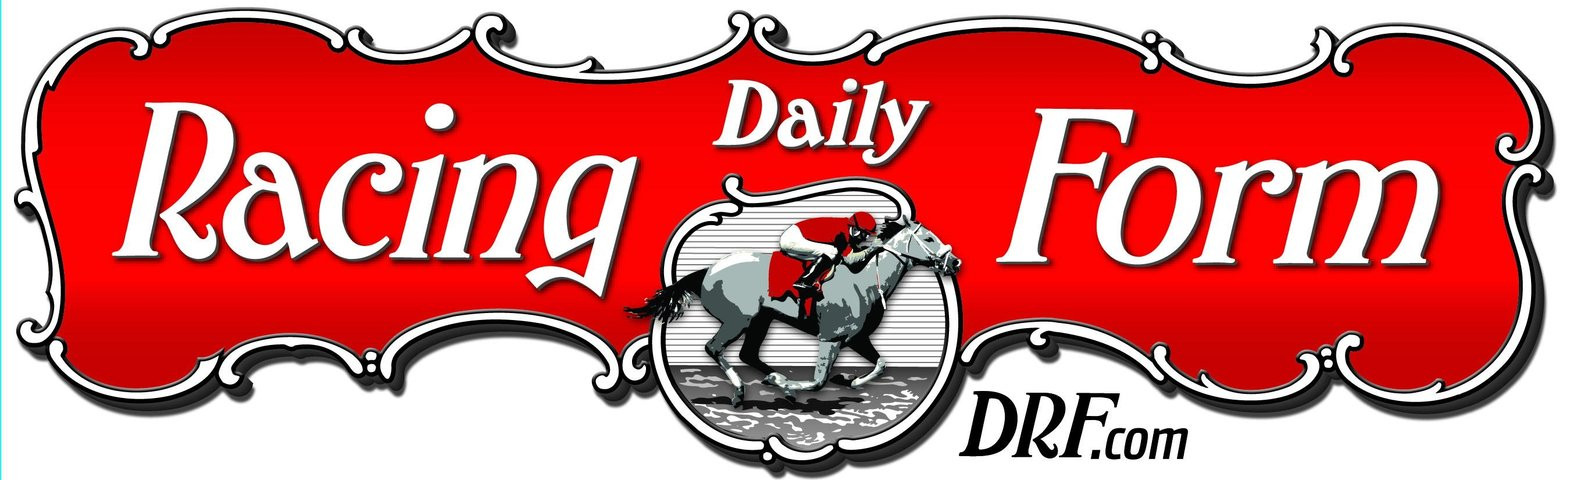 Daily Racing Form Experts Wdrb 41 Louisville News